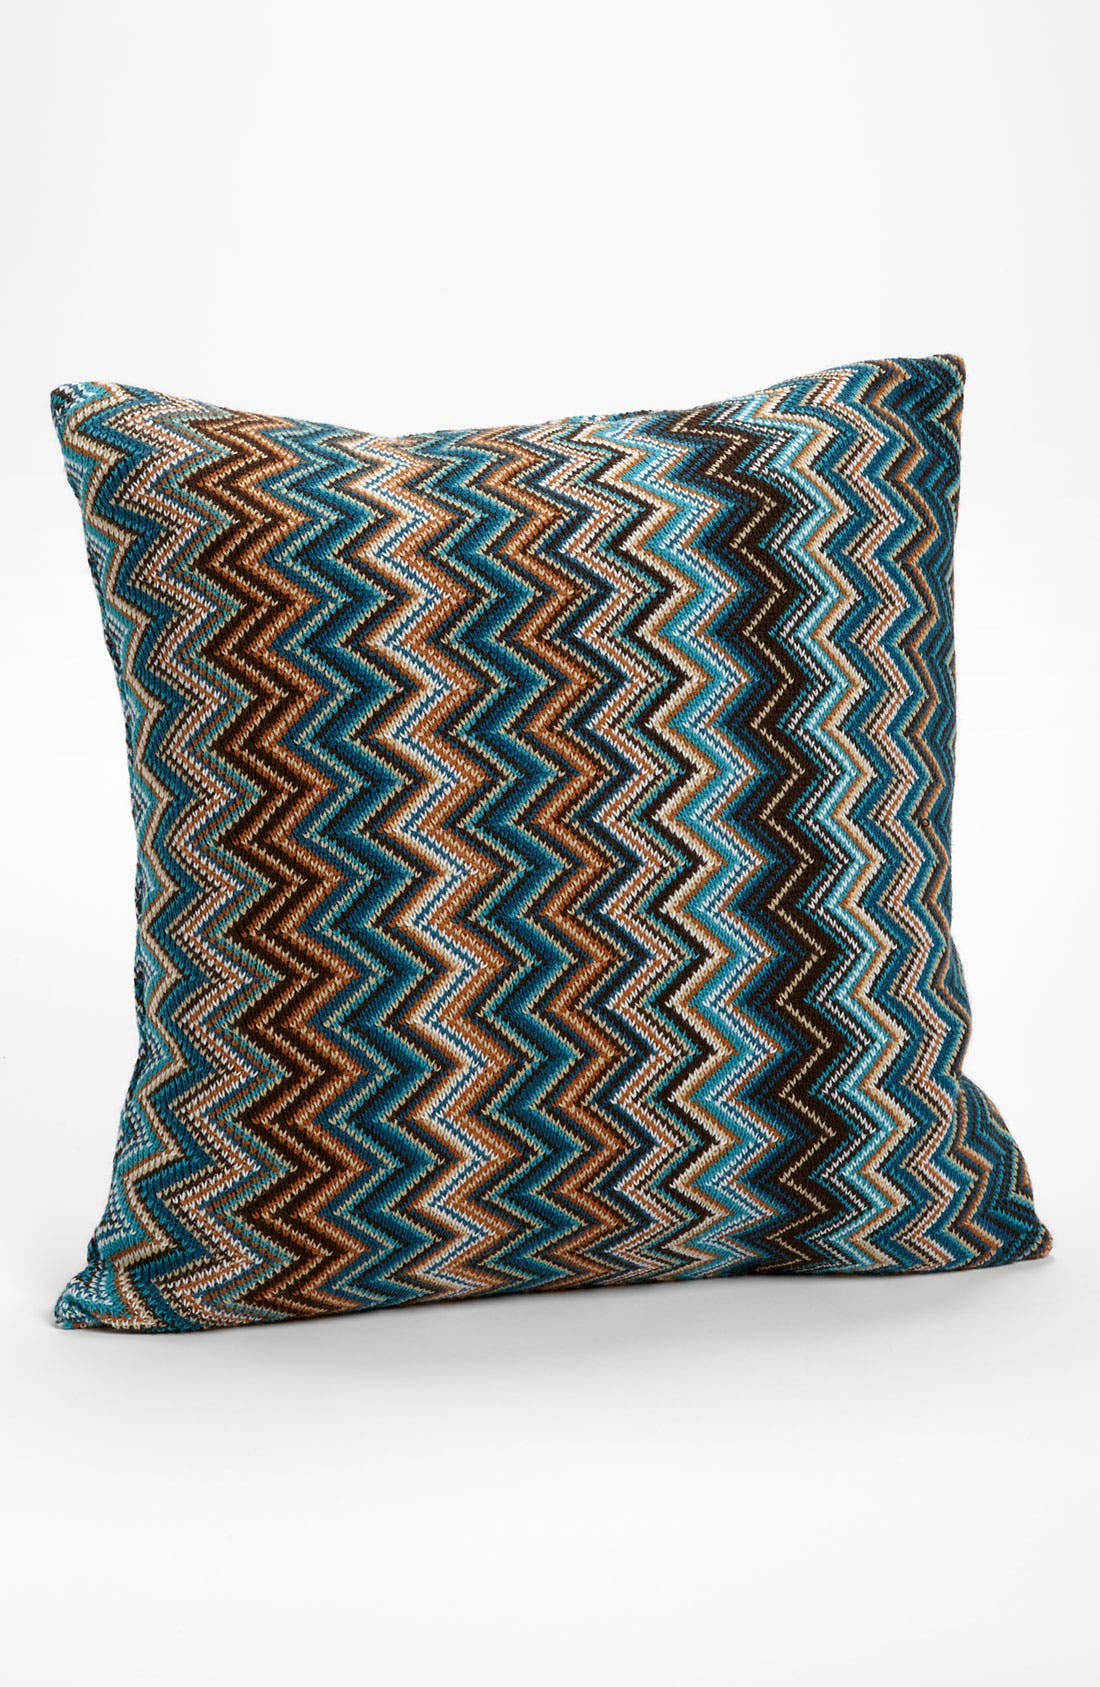 Alternate Image 1 Selected - Kennebunk Home 'Caitlin' Chevron Knit Pillow